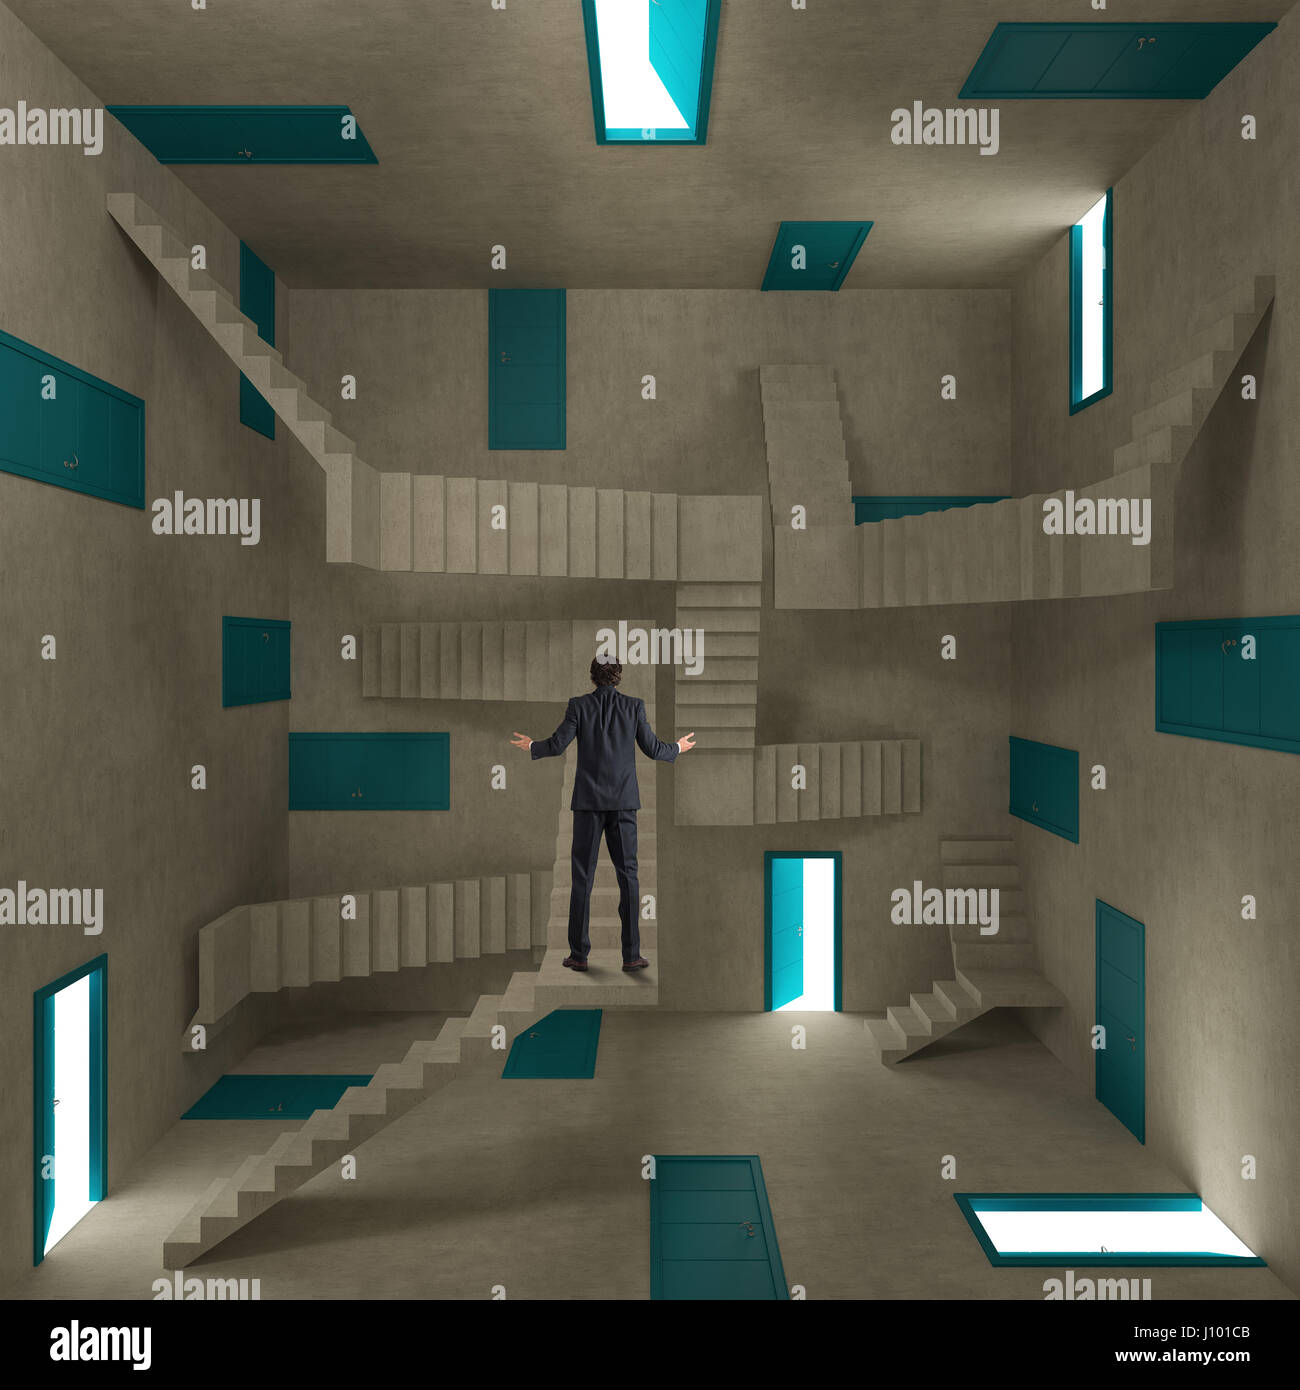 Confused businessman in a room full of doors and stairs - Stock Image